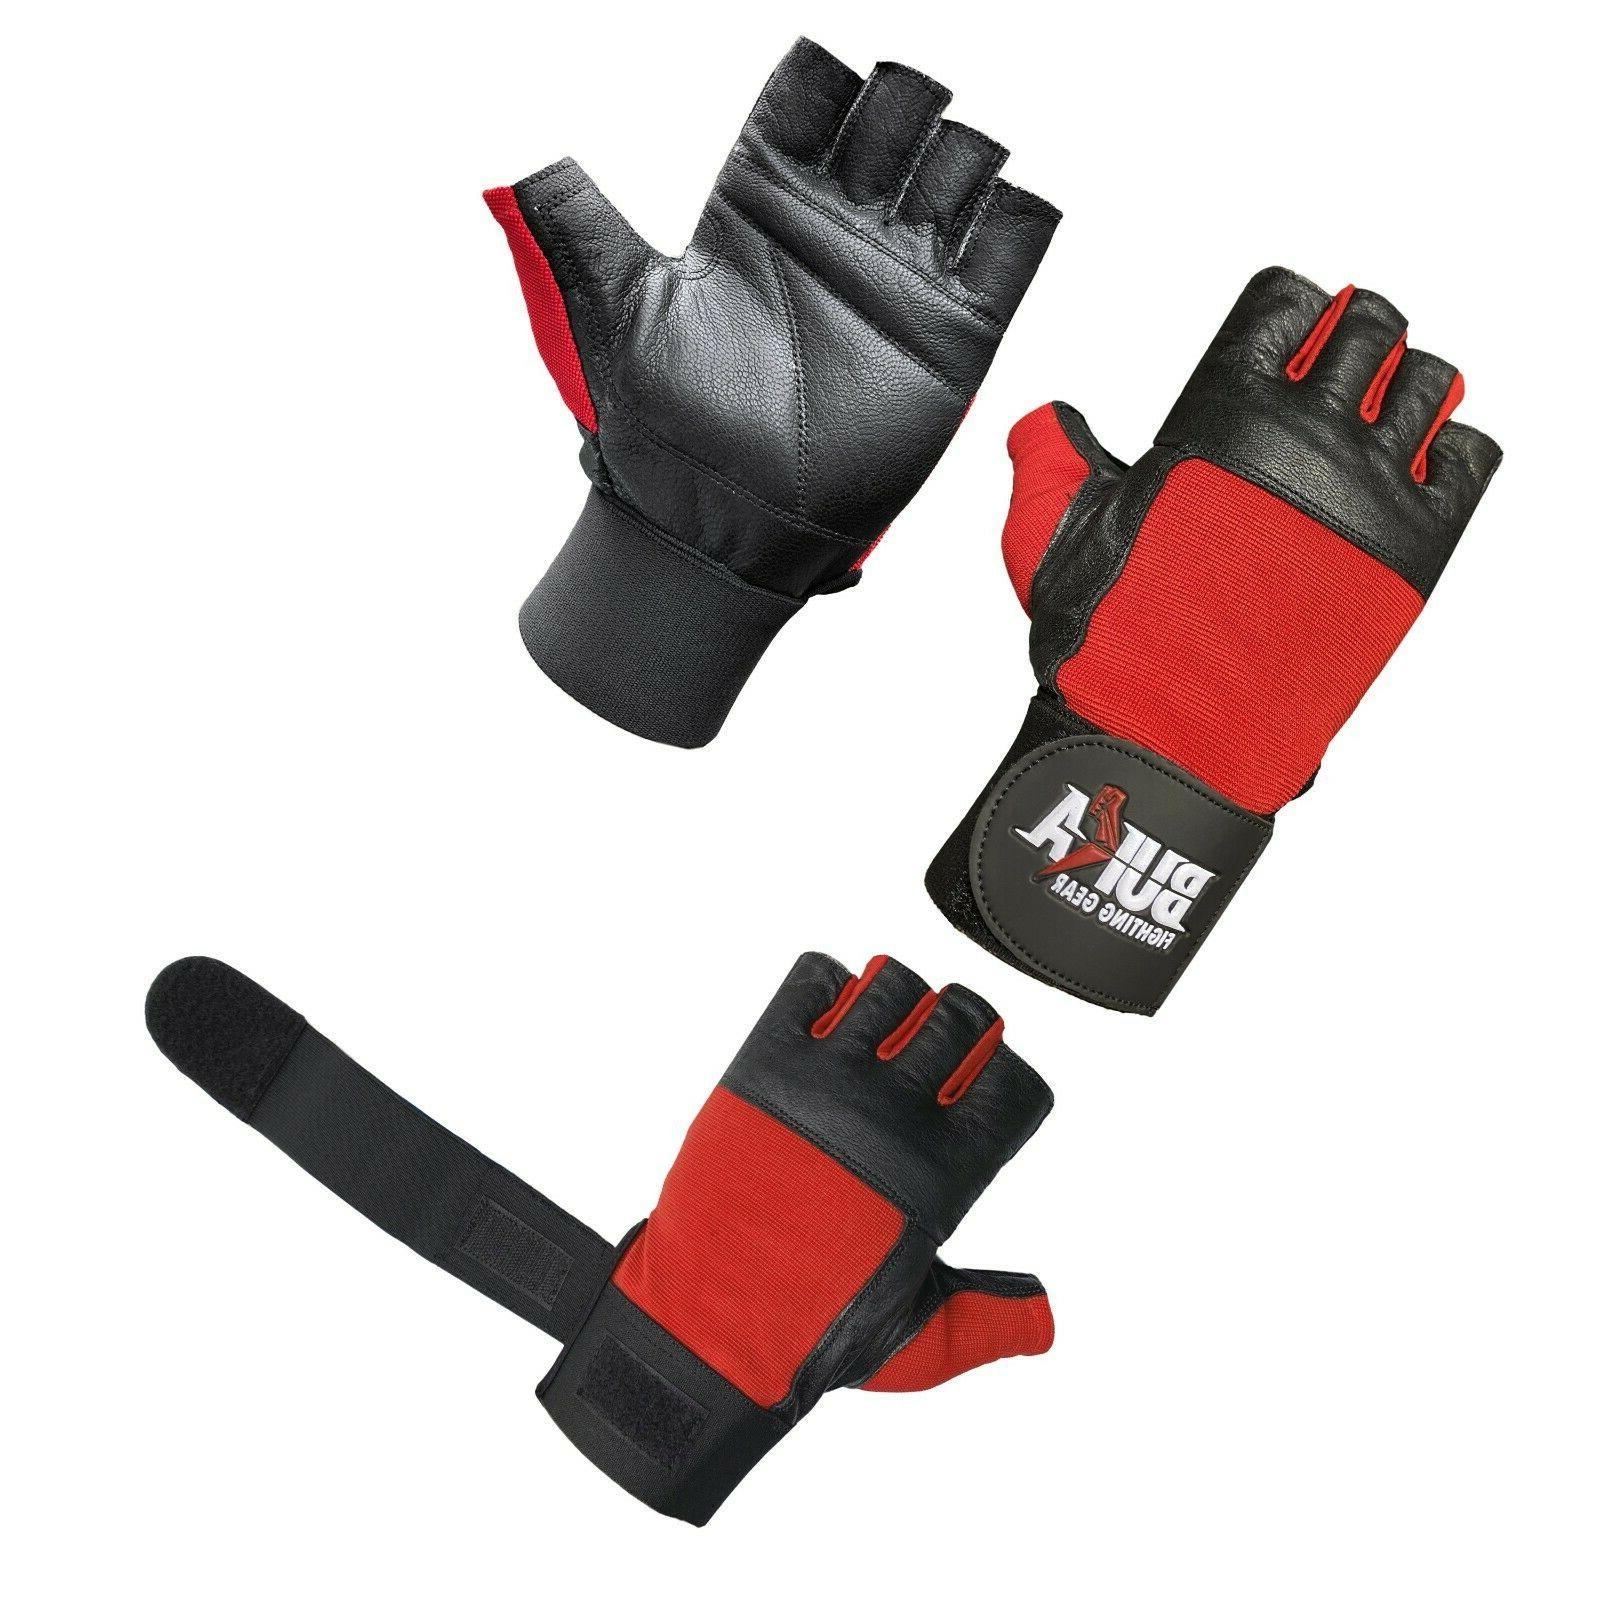 leather gym gloves fitness weight lifting training